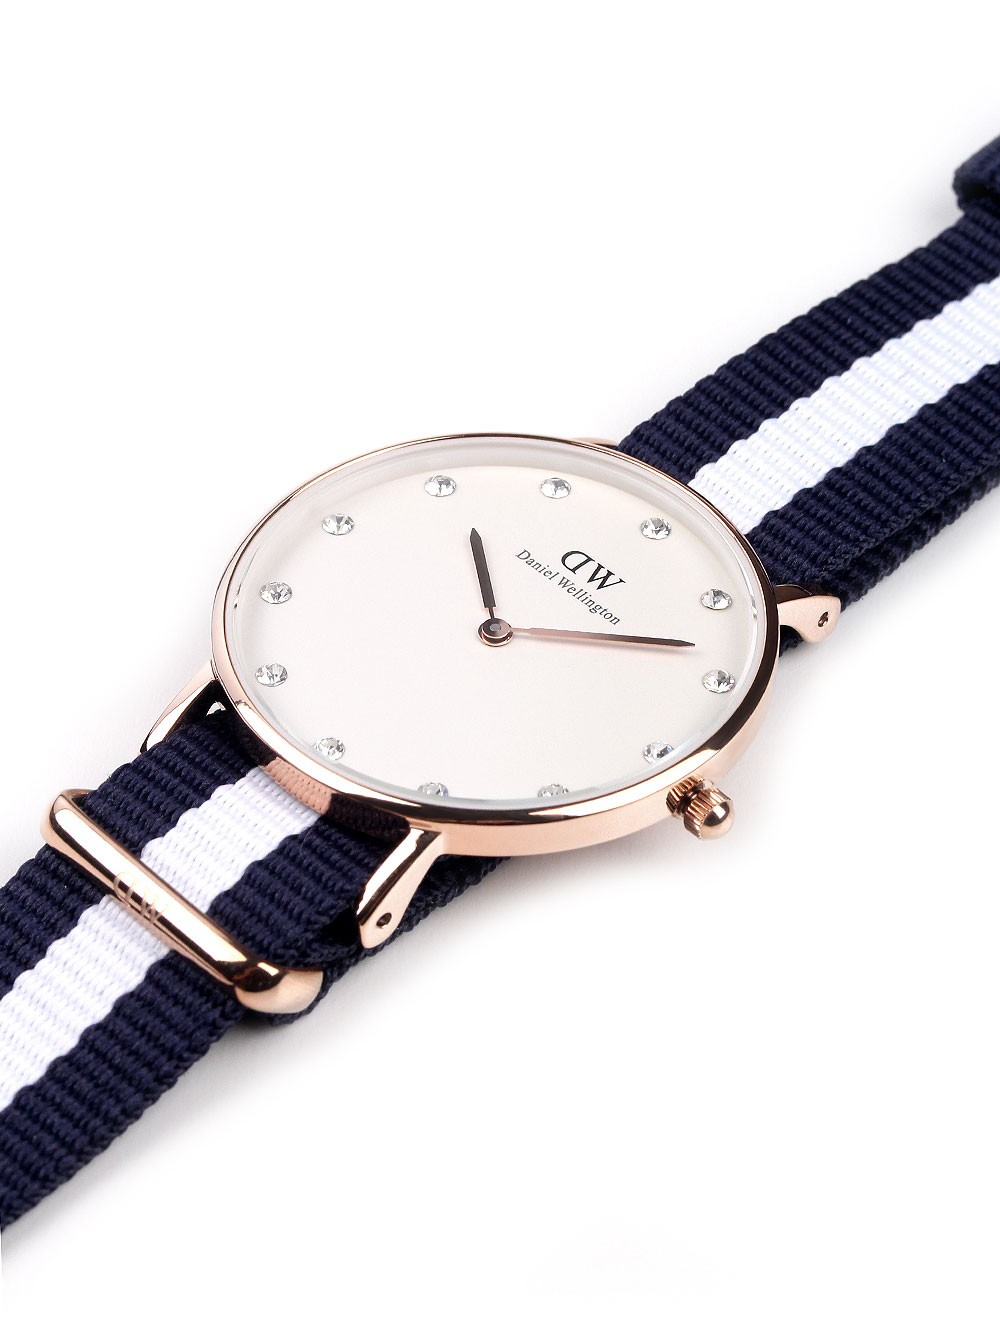 uhren chrono12 daniel wellington 0953dw classy glasgow. Black Bedroom Furniture Sets. Home Design Ideas